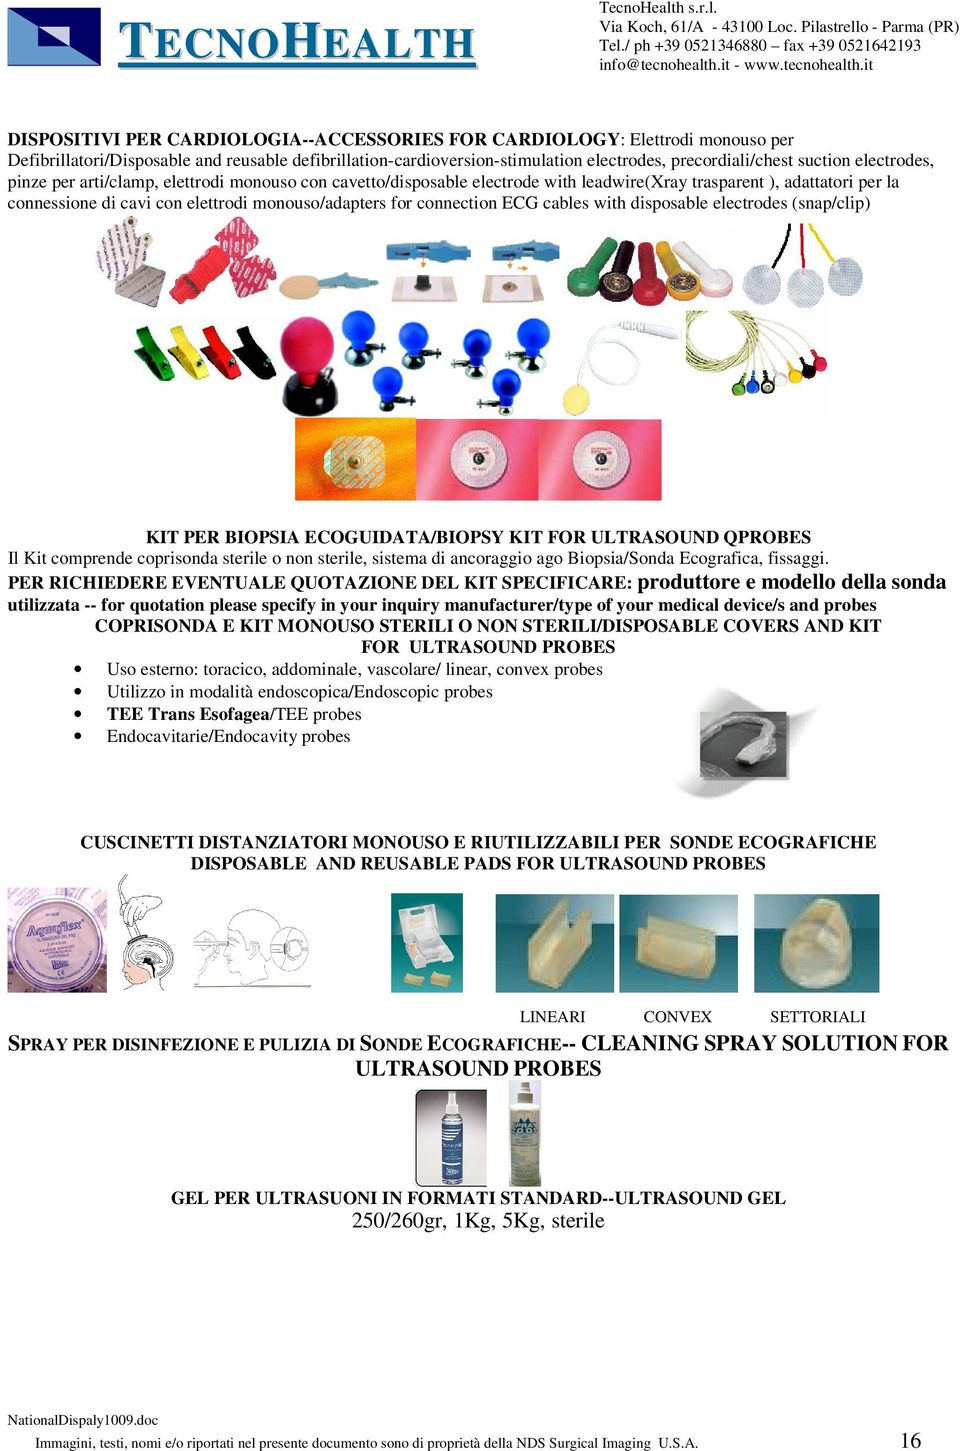 connection ECG cables with disposable electrodes (snap/clip) KIT PER BIOPSIA ECOGUIDATA/BIOPSY KIT FOR ULTRASOUND QPROBES Il Kit comprende coprisonda sterile o non sterile, sistema di ancoraggio ago